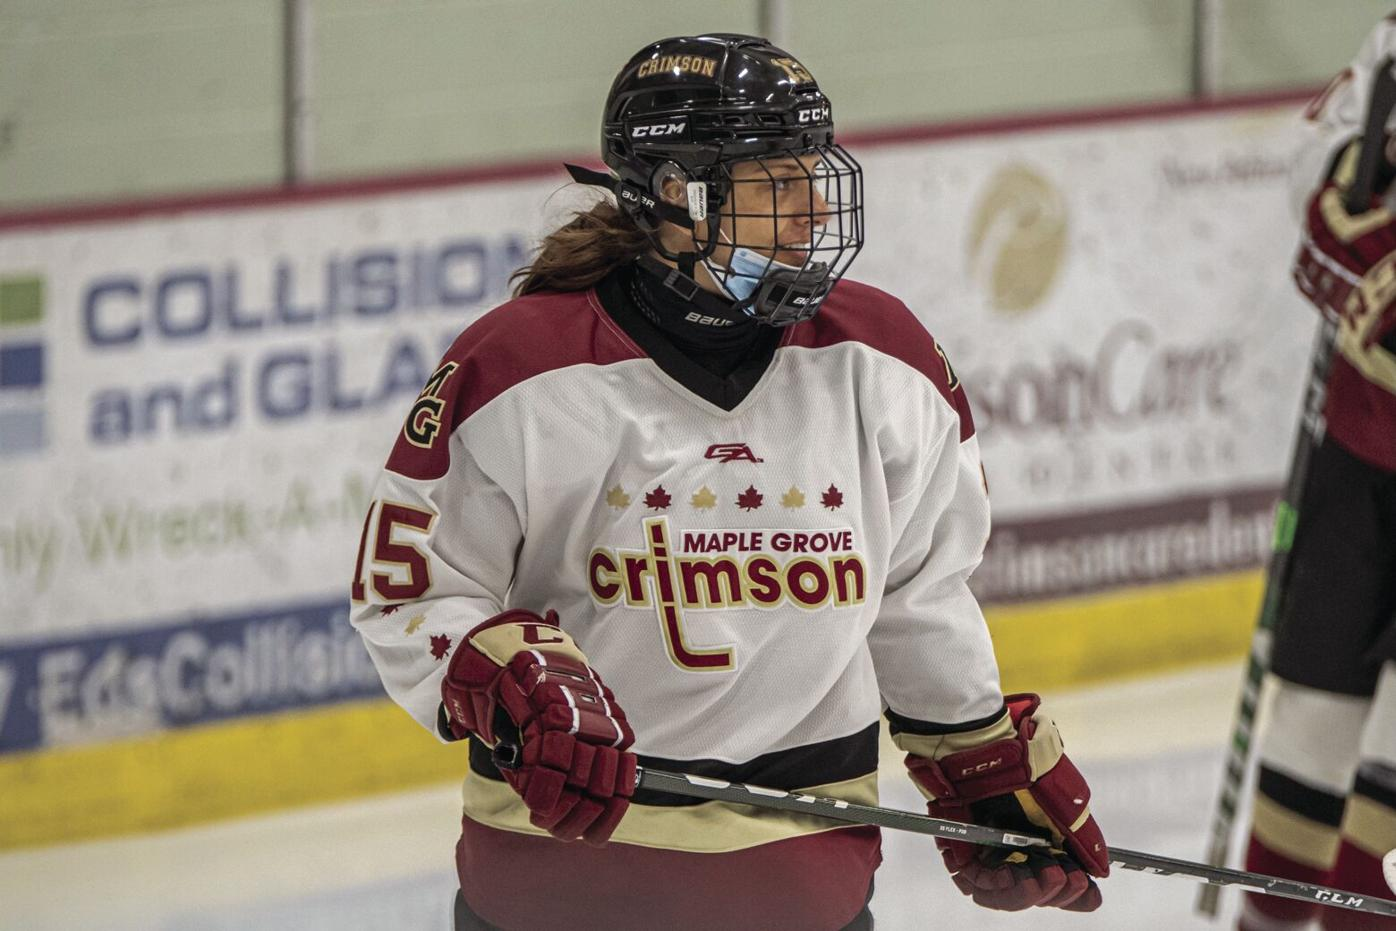 An attitude of gratitude: From preschool to D1 hockey, Maple Grove athlete is thanking coaches and mentors in a special way